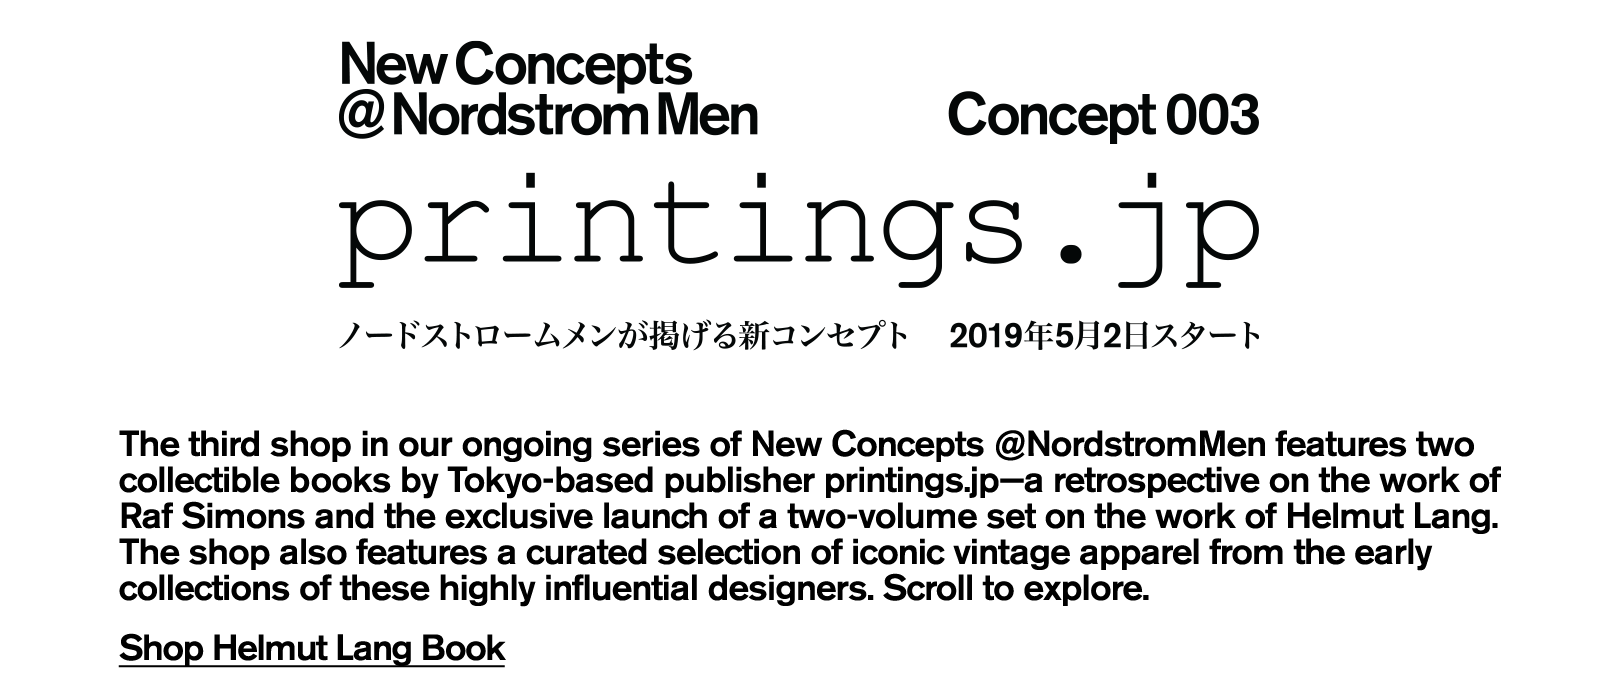 New Concepts at Nordstrom Men: Printings.jp.